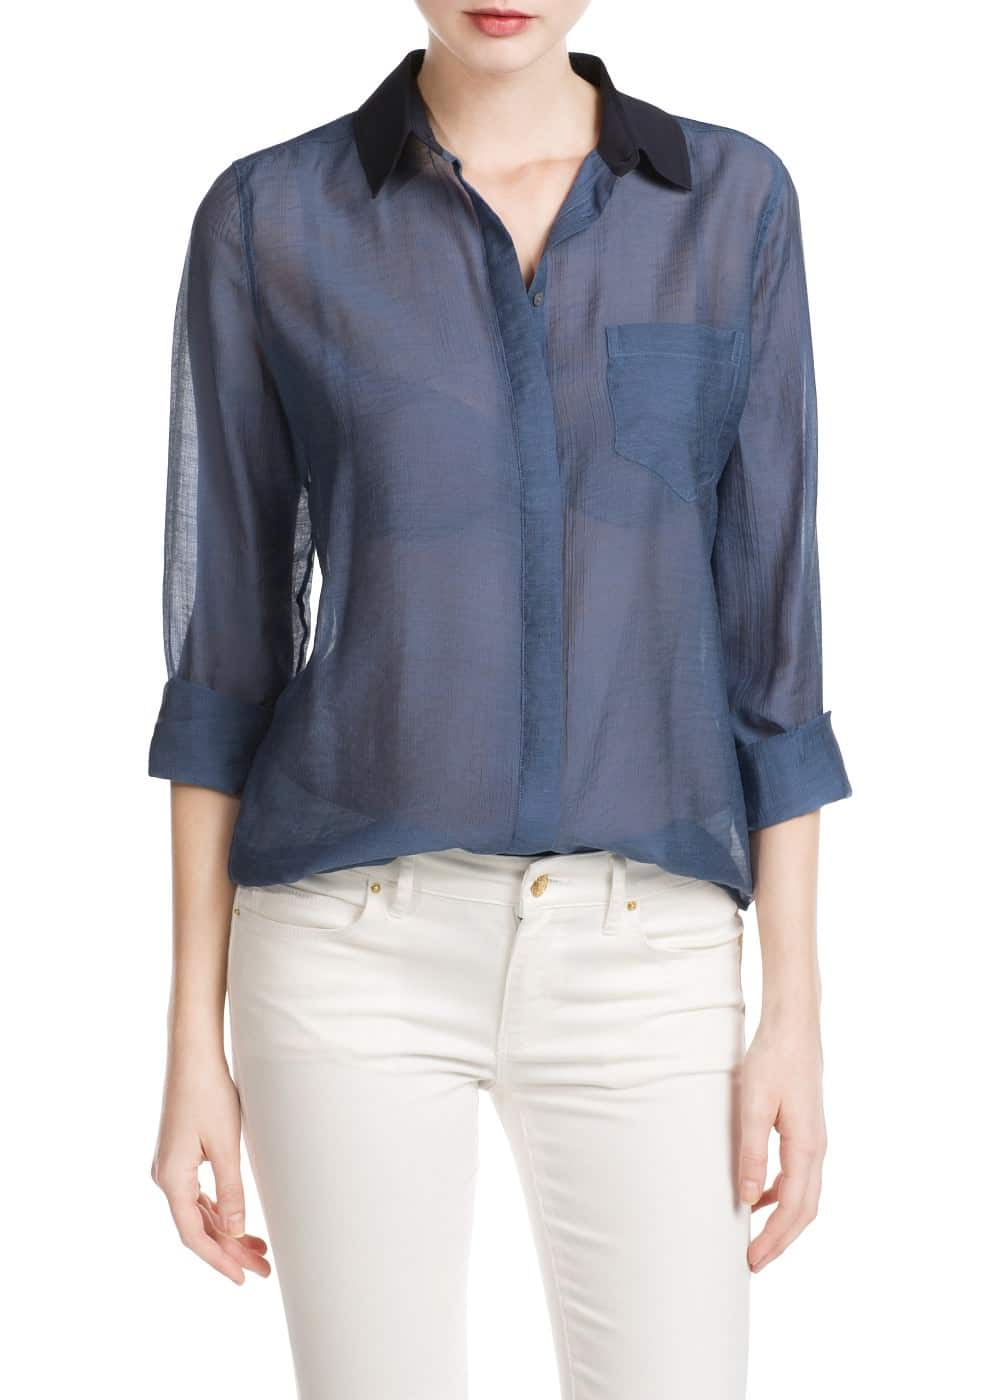 Soft fabric shirt